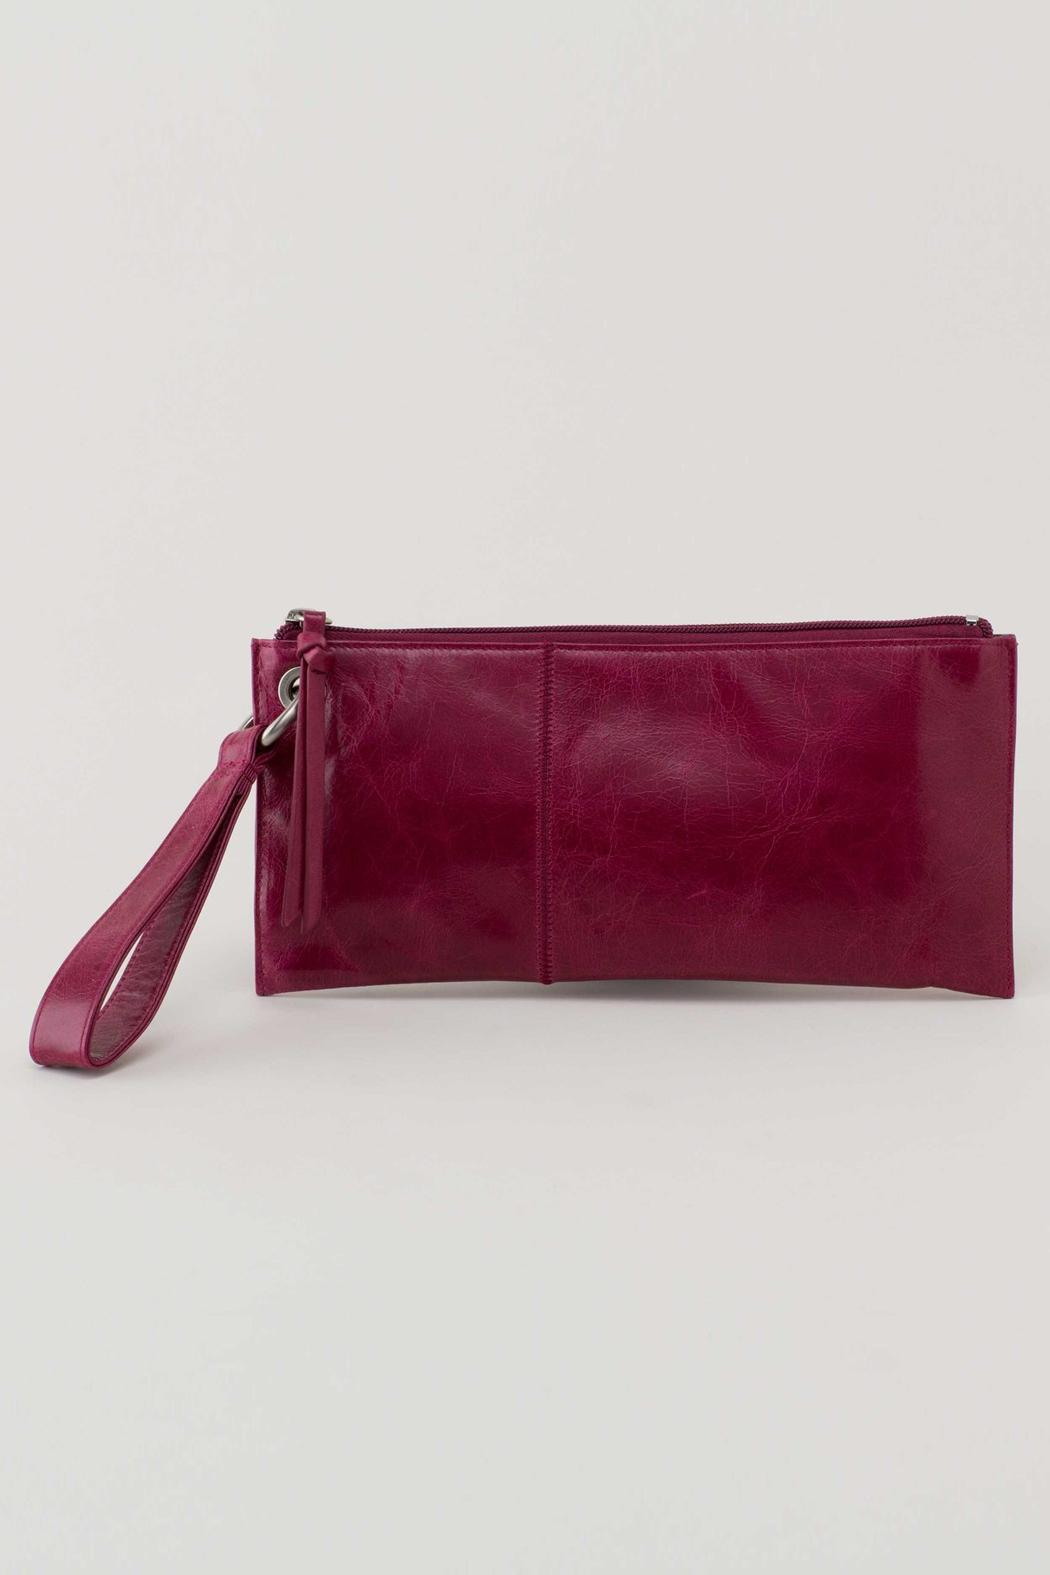 VIDA Leather Statement Clutch - Hello by VIDA wEPV1Wwz